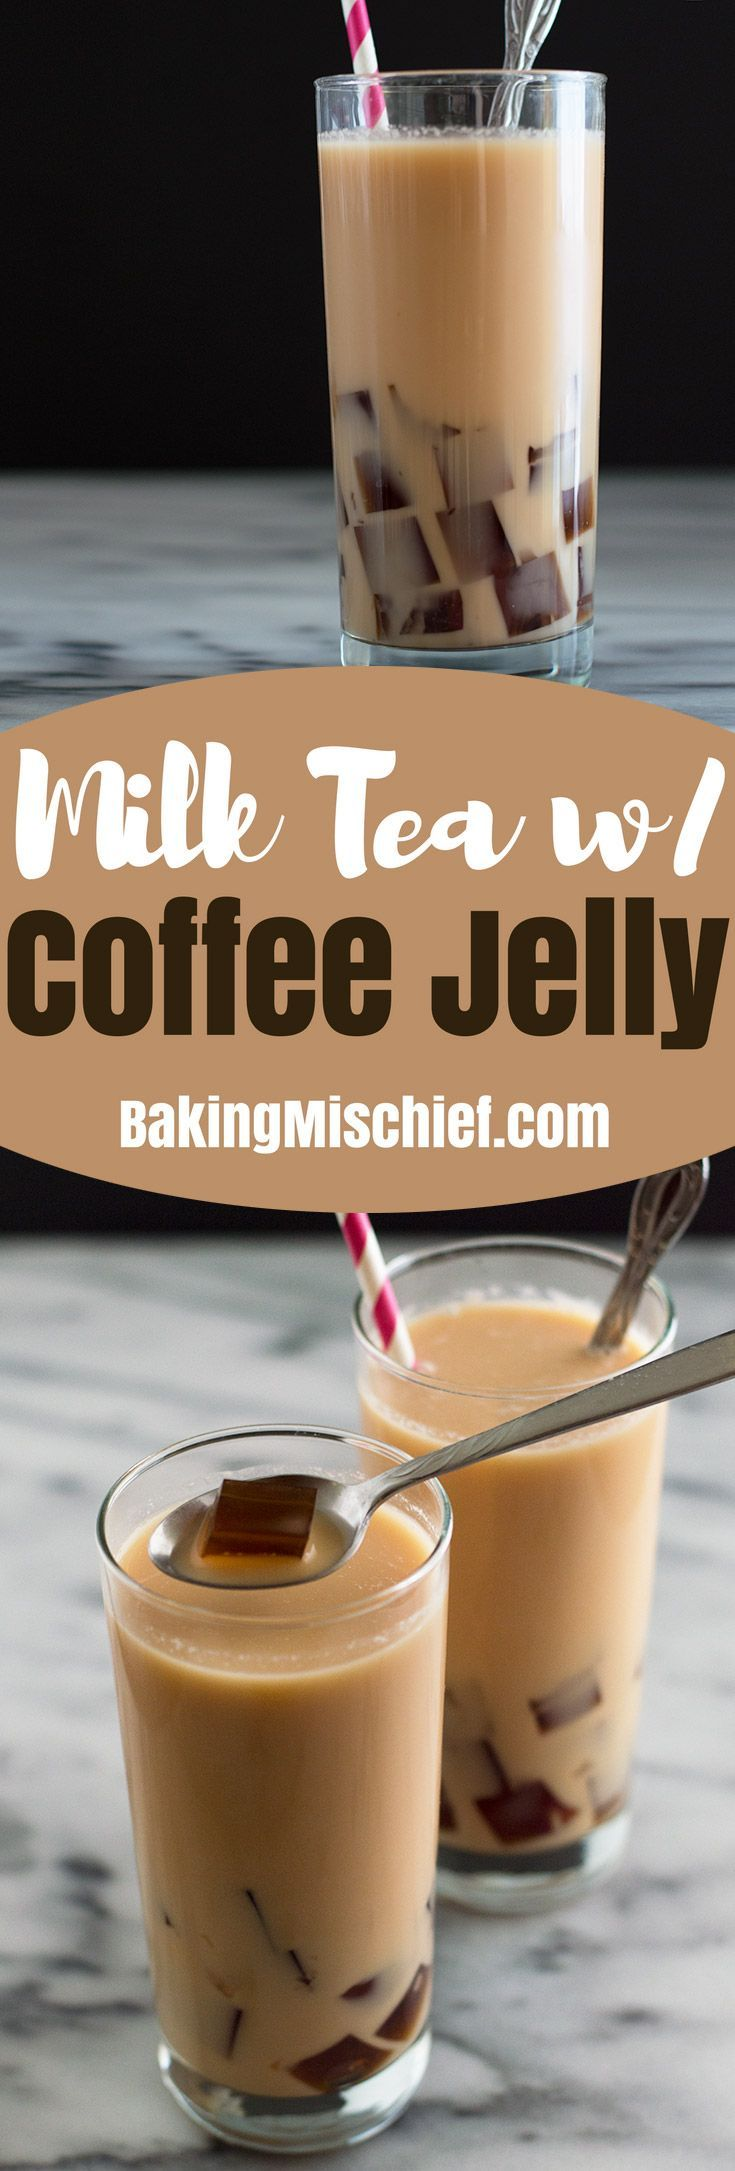 Cool and refreshing milk tea with coffee jelly is so easy to make and fun to drink. Make some and impress your friends. Recipe includes nutritional information. From BakingMischief.com